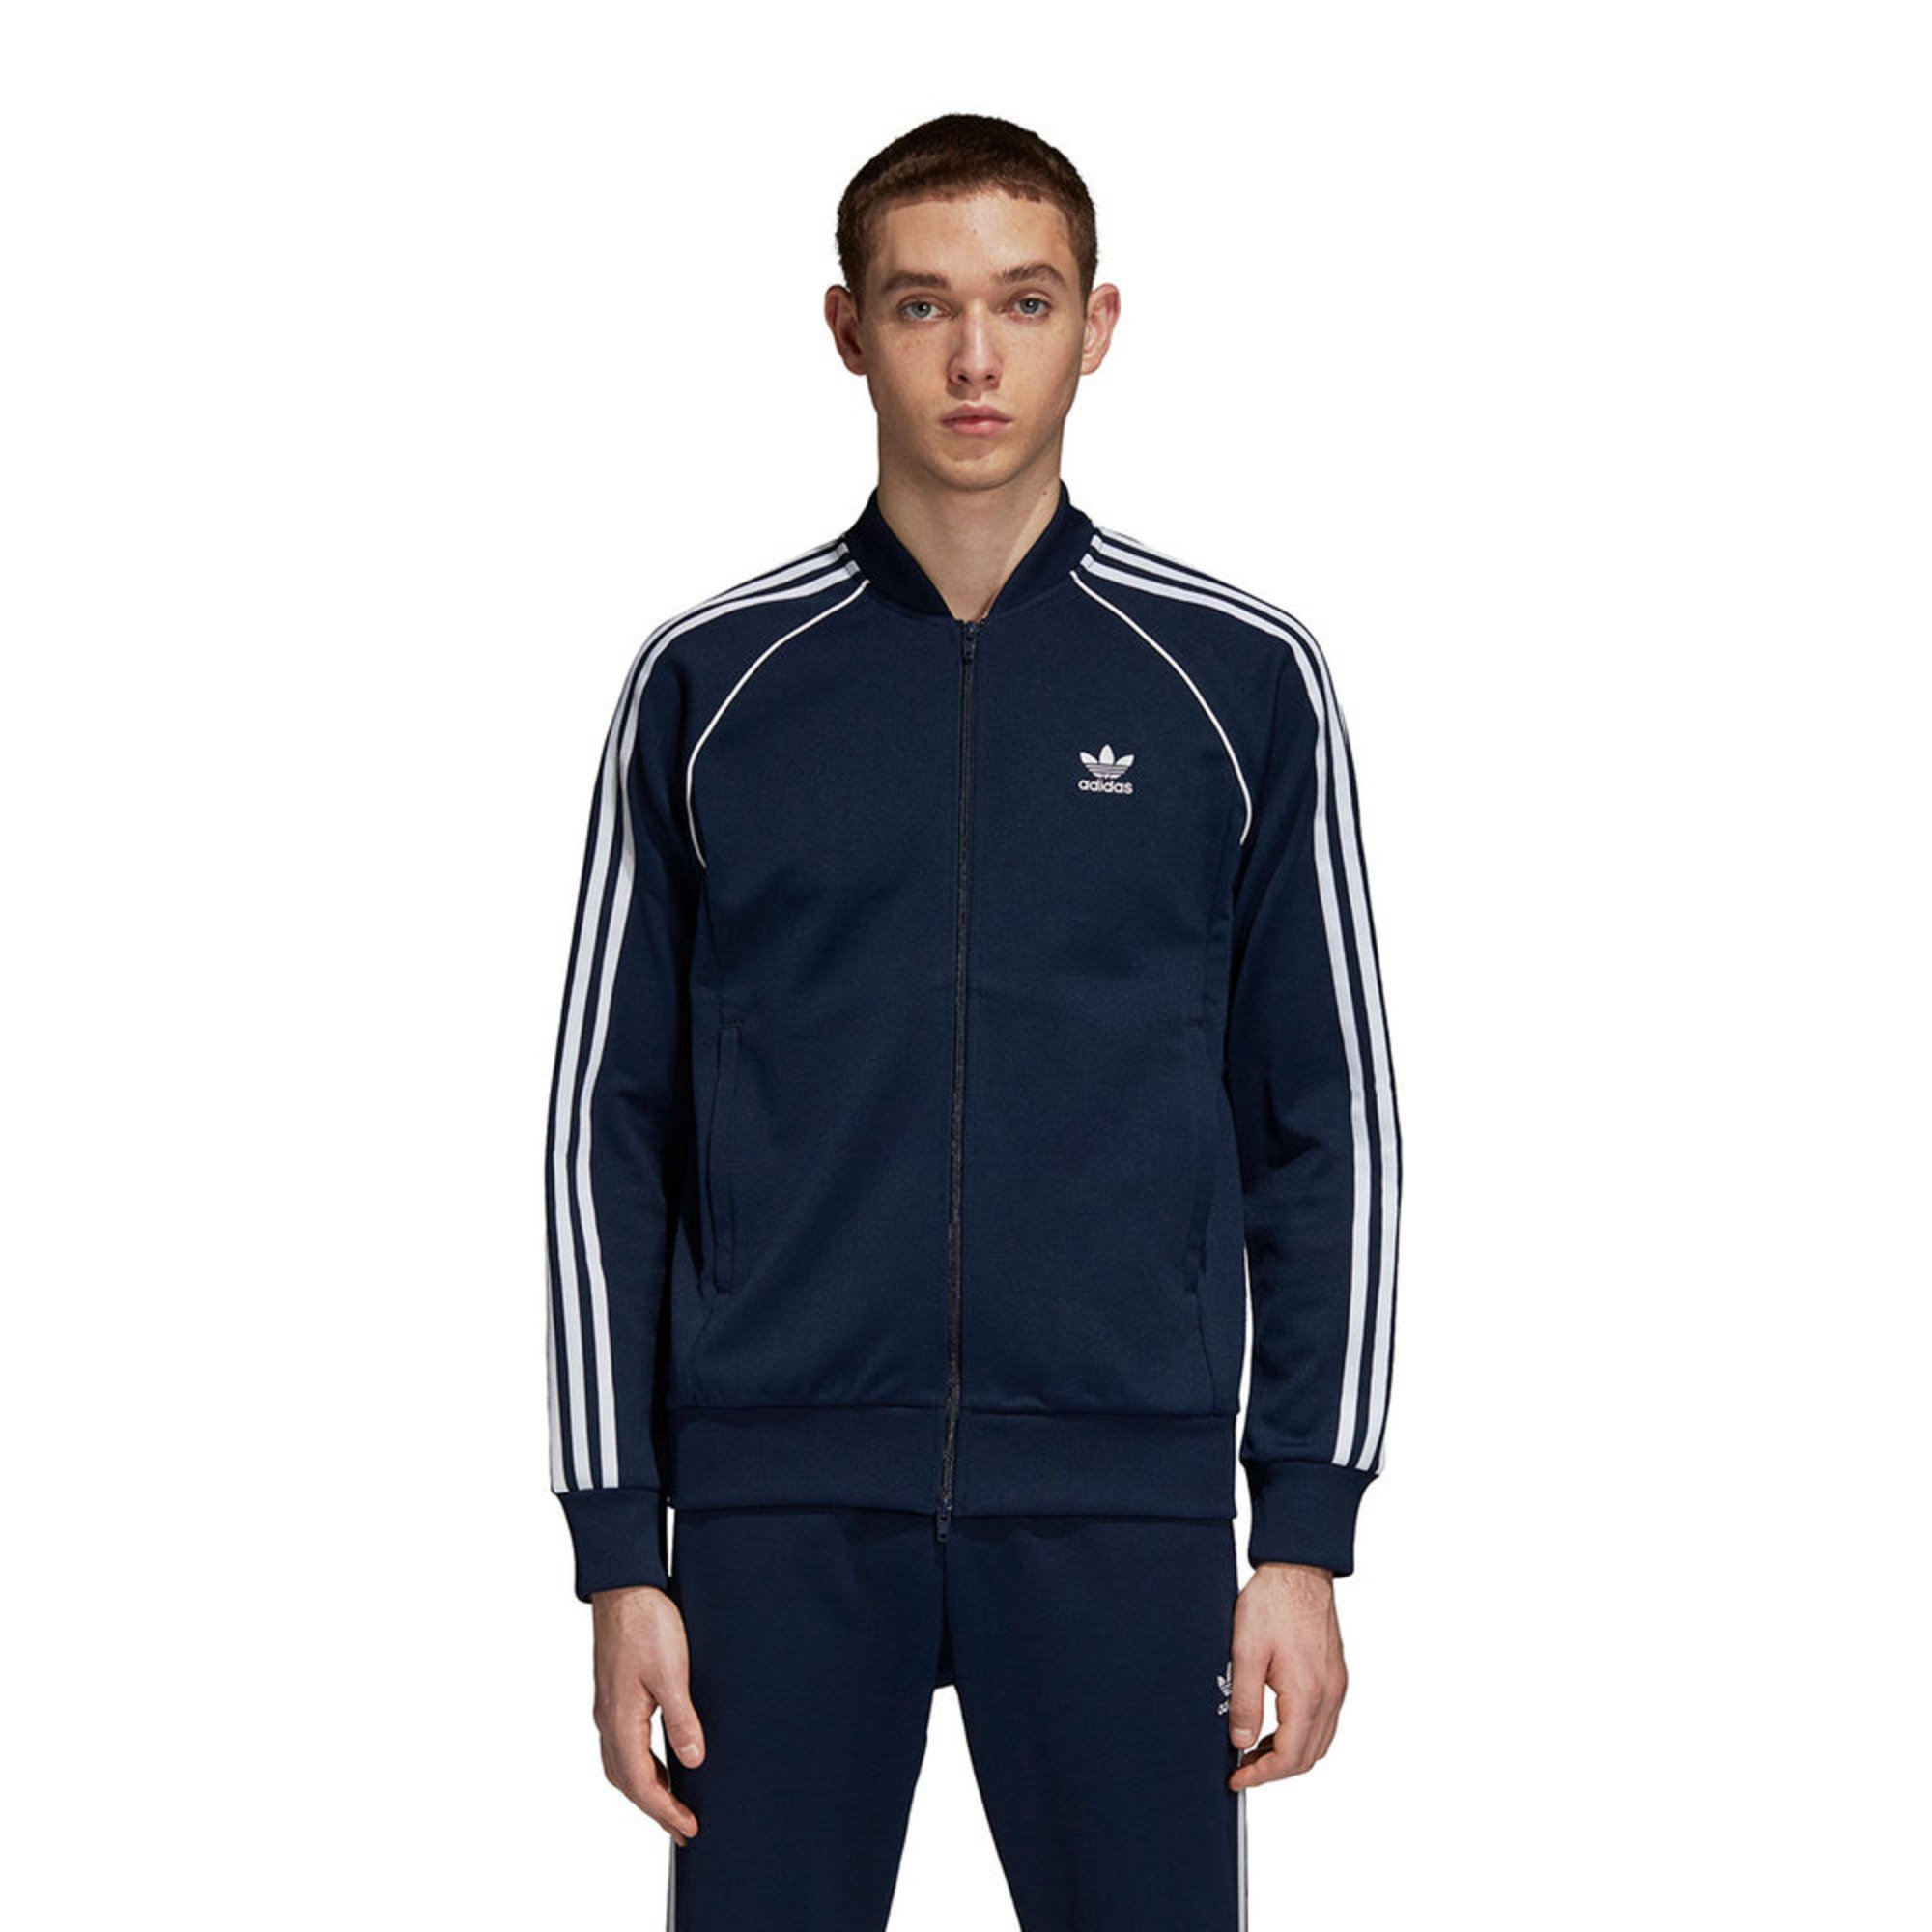 88c17b69e7ba58 Adidas Men s Originals Superstar Track Jacket